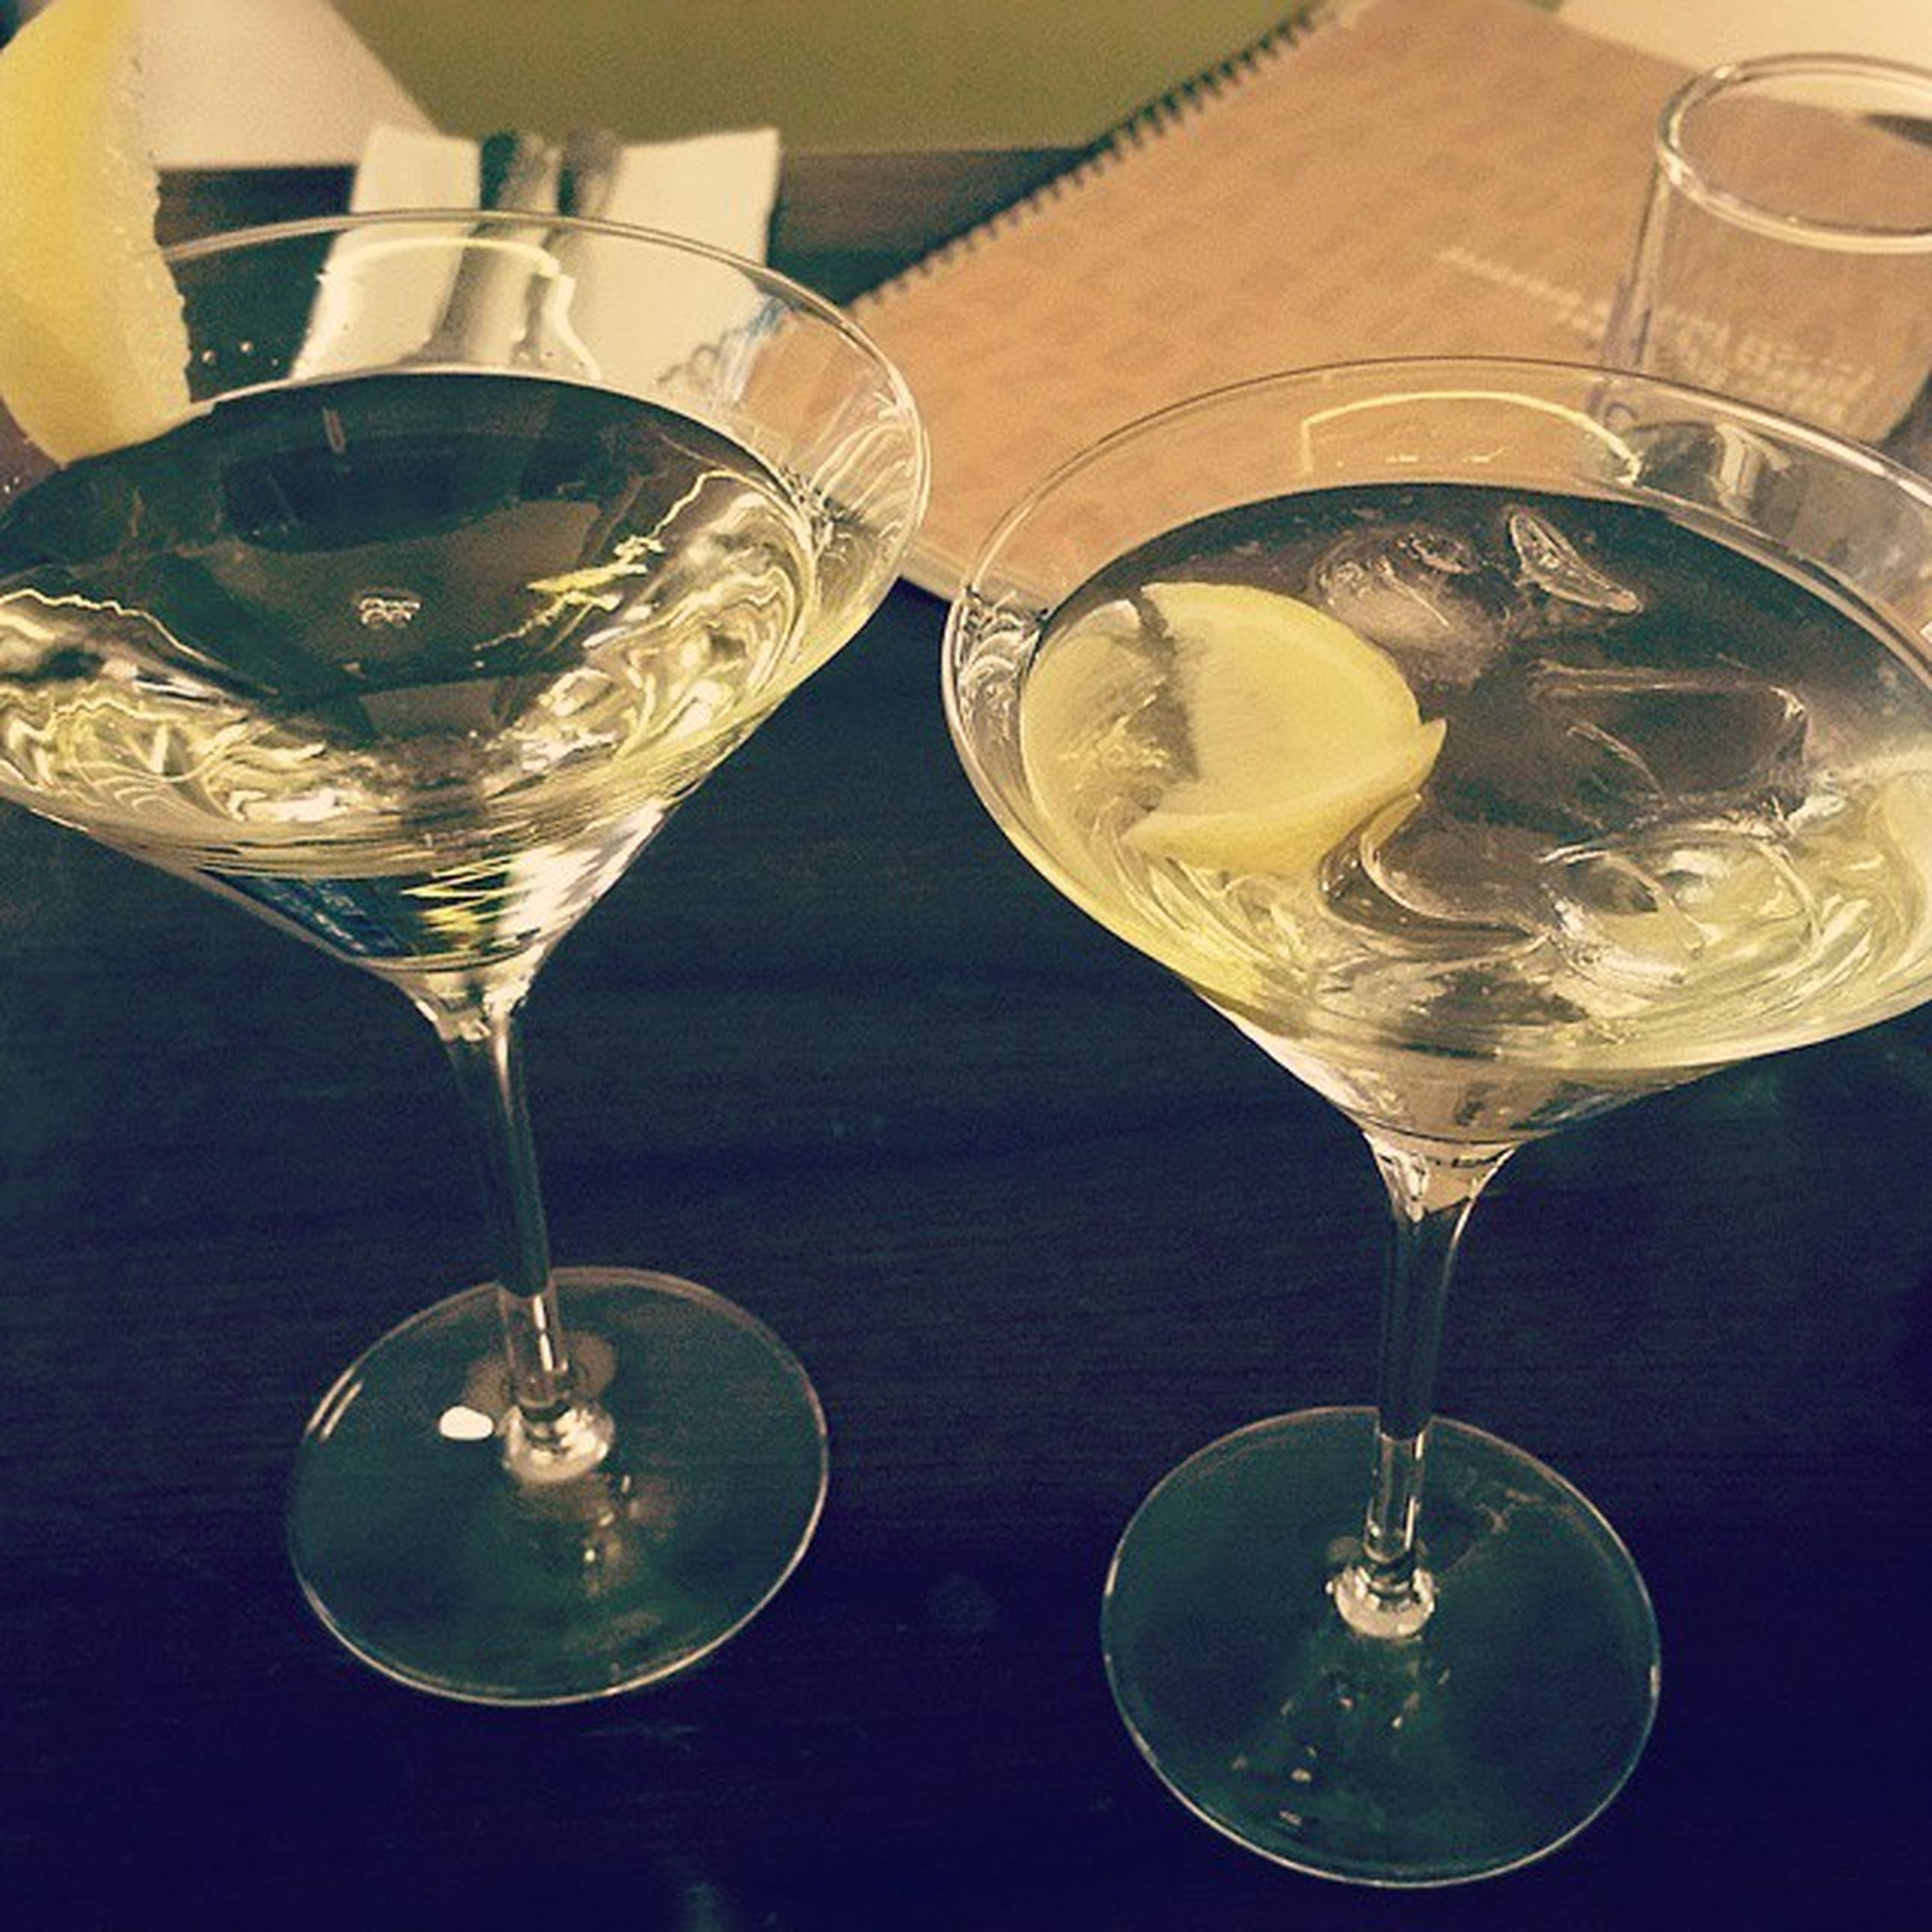 drink, drinking glass, food and drink, refreshment, wineglass, indoors, table, glass - material, freshness, alcohol, still life, wine, transparent, close-up, glass, restaurant, alcoholic drink, cocktail, wine glass, focus on foreground